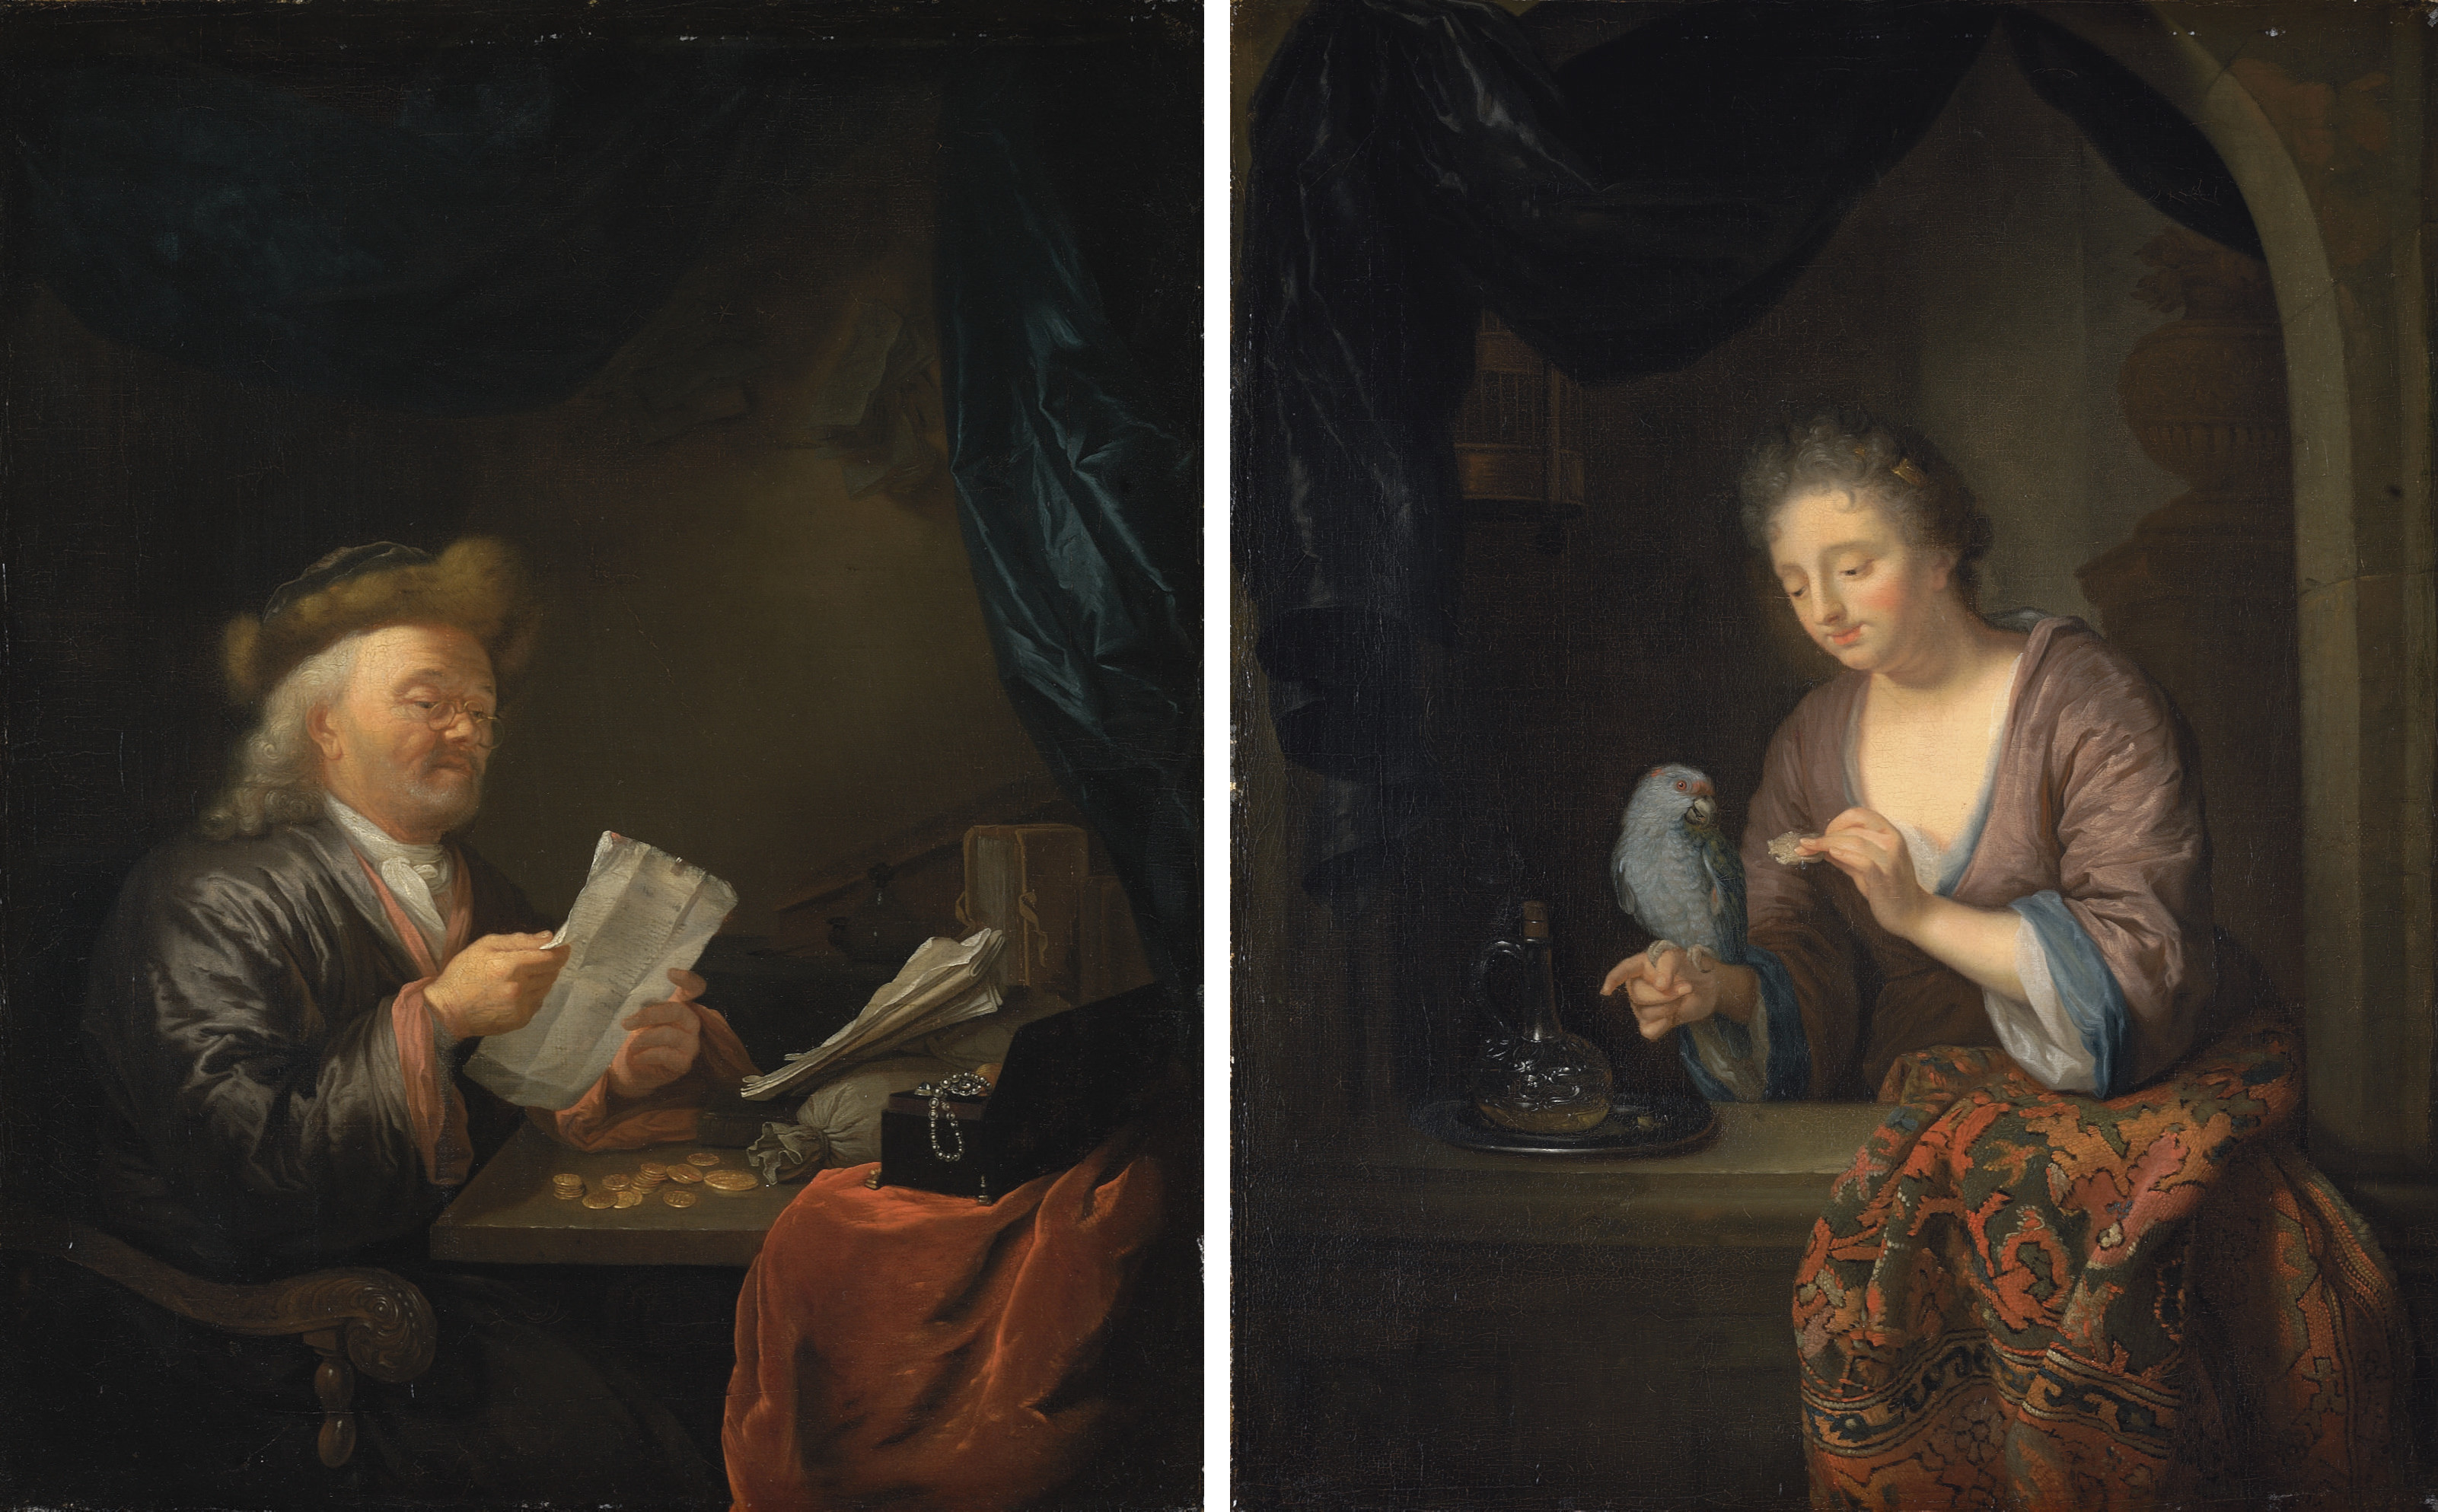 A moneylender reading a letter at a table with coins, books and a jewellery box; and A lady feeding a parrot at a window casement